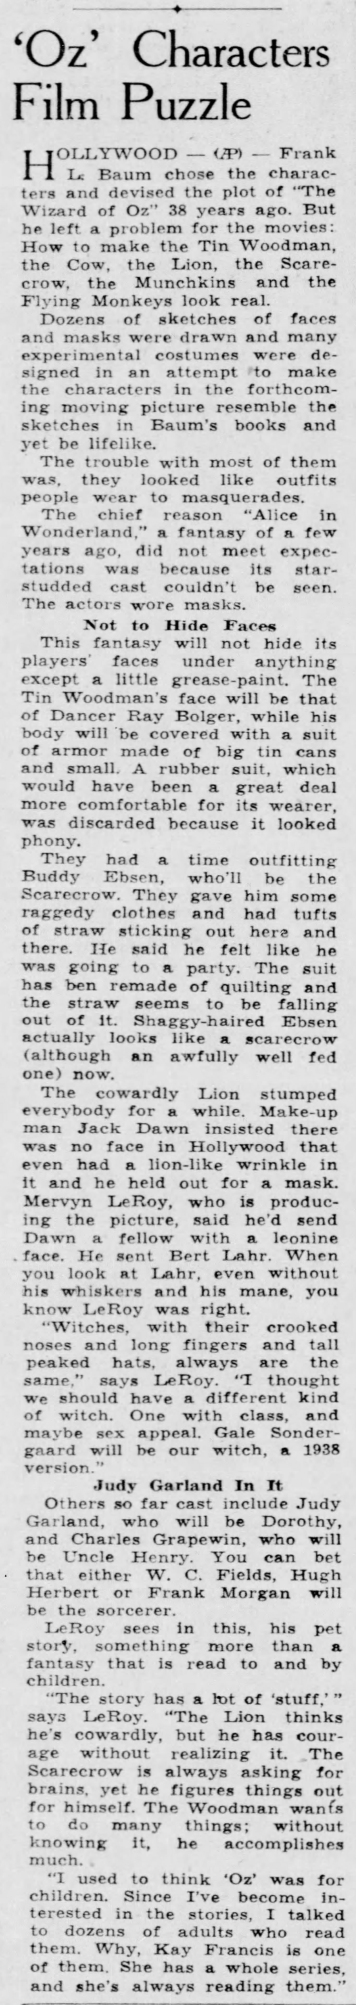 September 4, 1938 OZ CHARACTERS Democrat_and_Chronicle (Rochester)